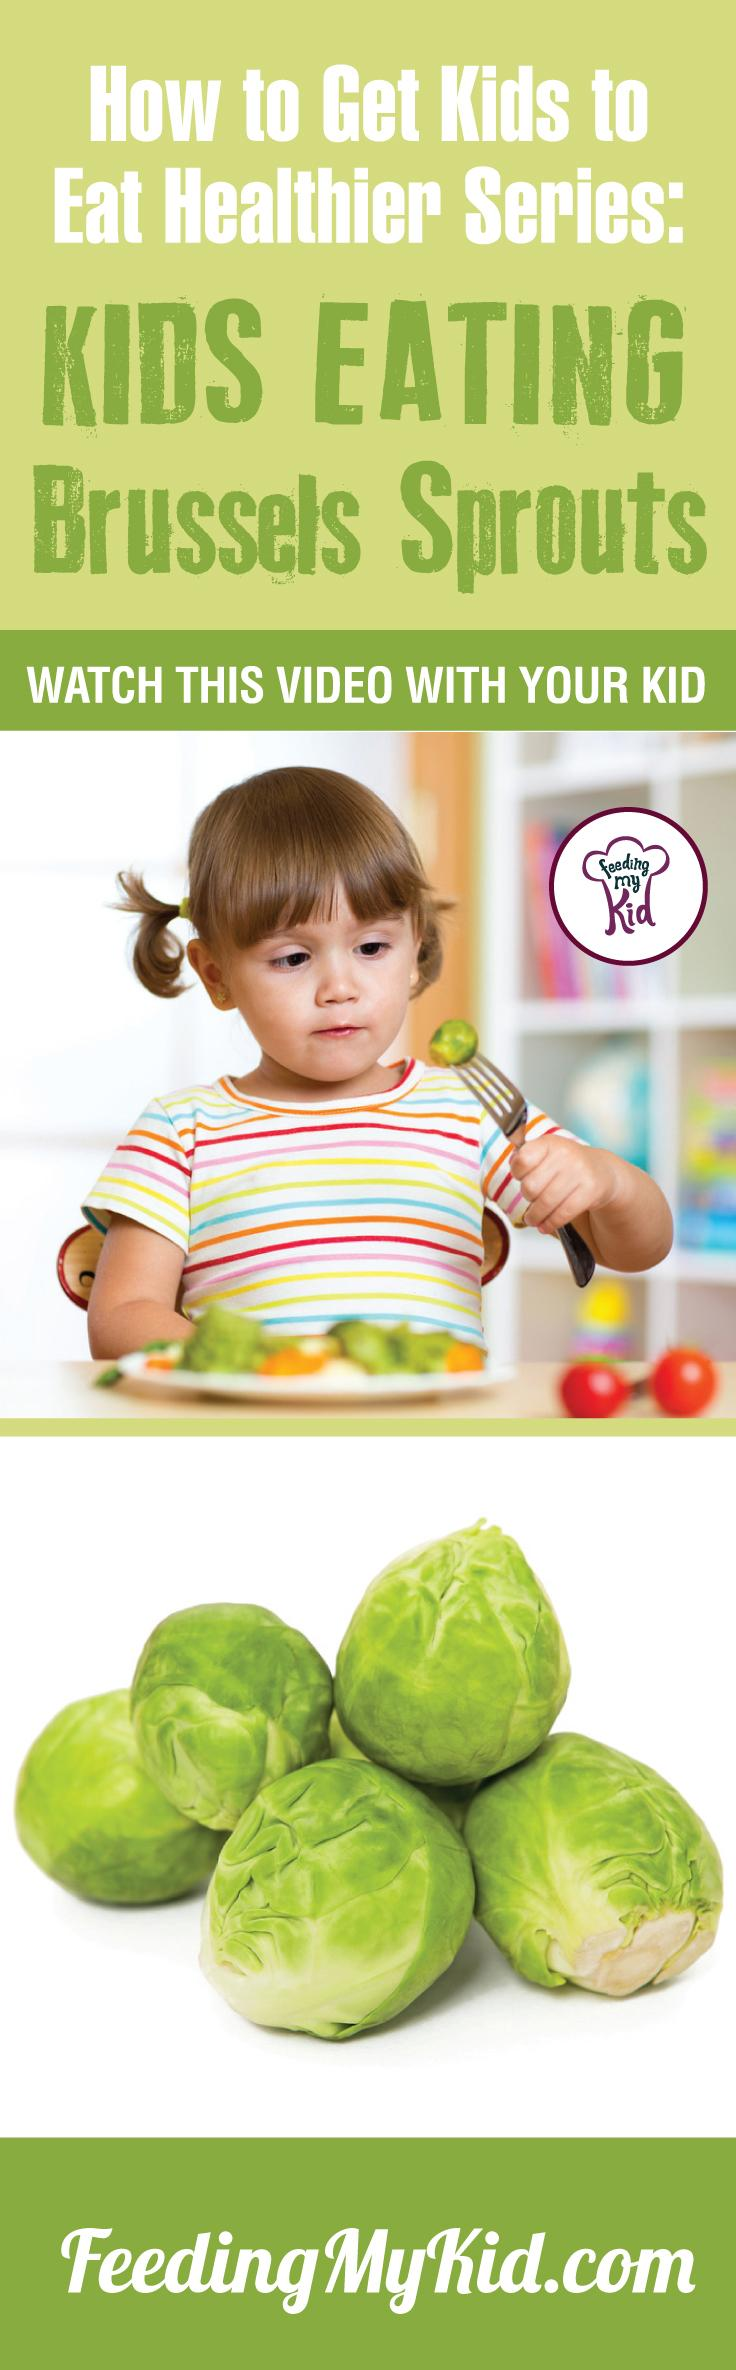 Want your kids to eat Brussels Sprouts? Teach your kids how to eat more vegetables and fruits. Watch these videos with your kids of kids eating veggies and fruits and get your kids to eat veggies and fruits. Find out how it works here. Feeding My Kid is a filled with all the information you need about how to raise your kids, from healthy tips to nutritious recipes. #pickyeating #getkidstoeat #brusselssprouts